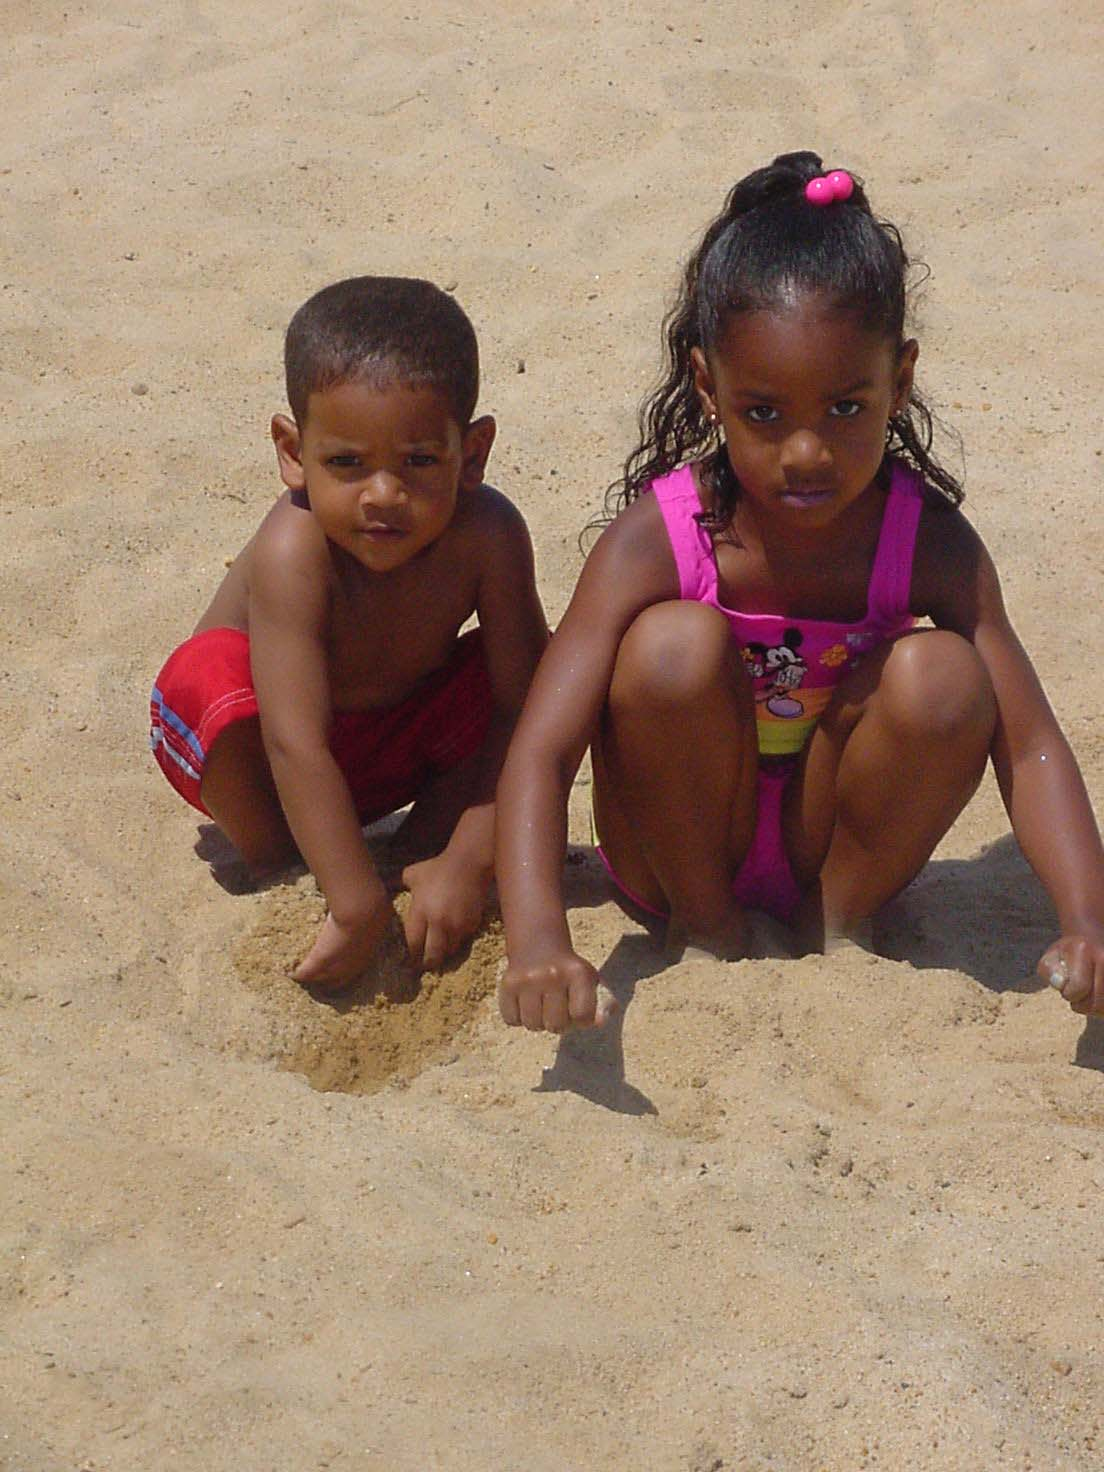 Kaiya and Kaleb Beach